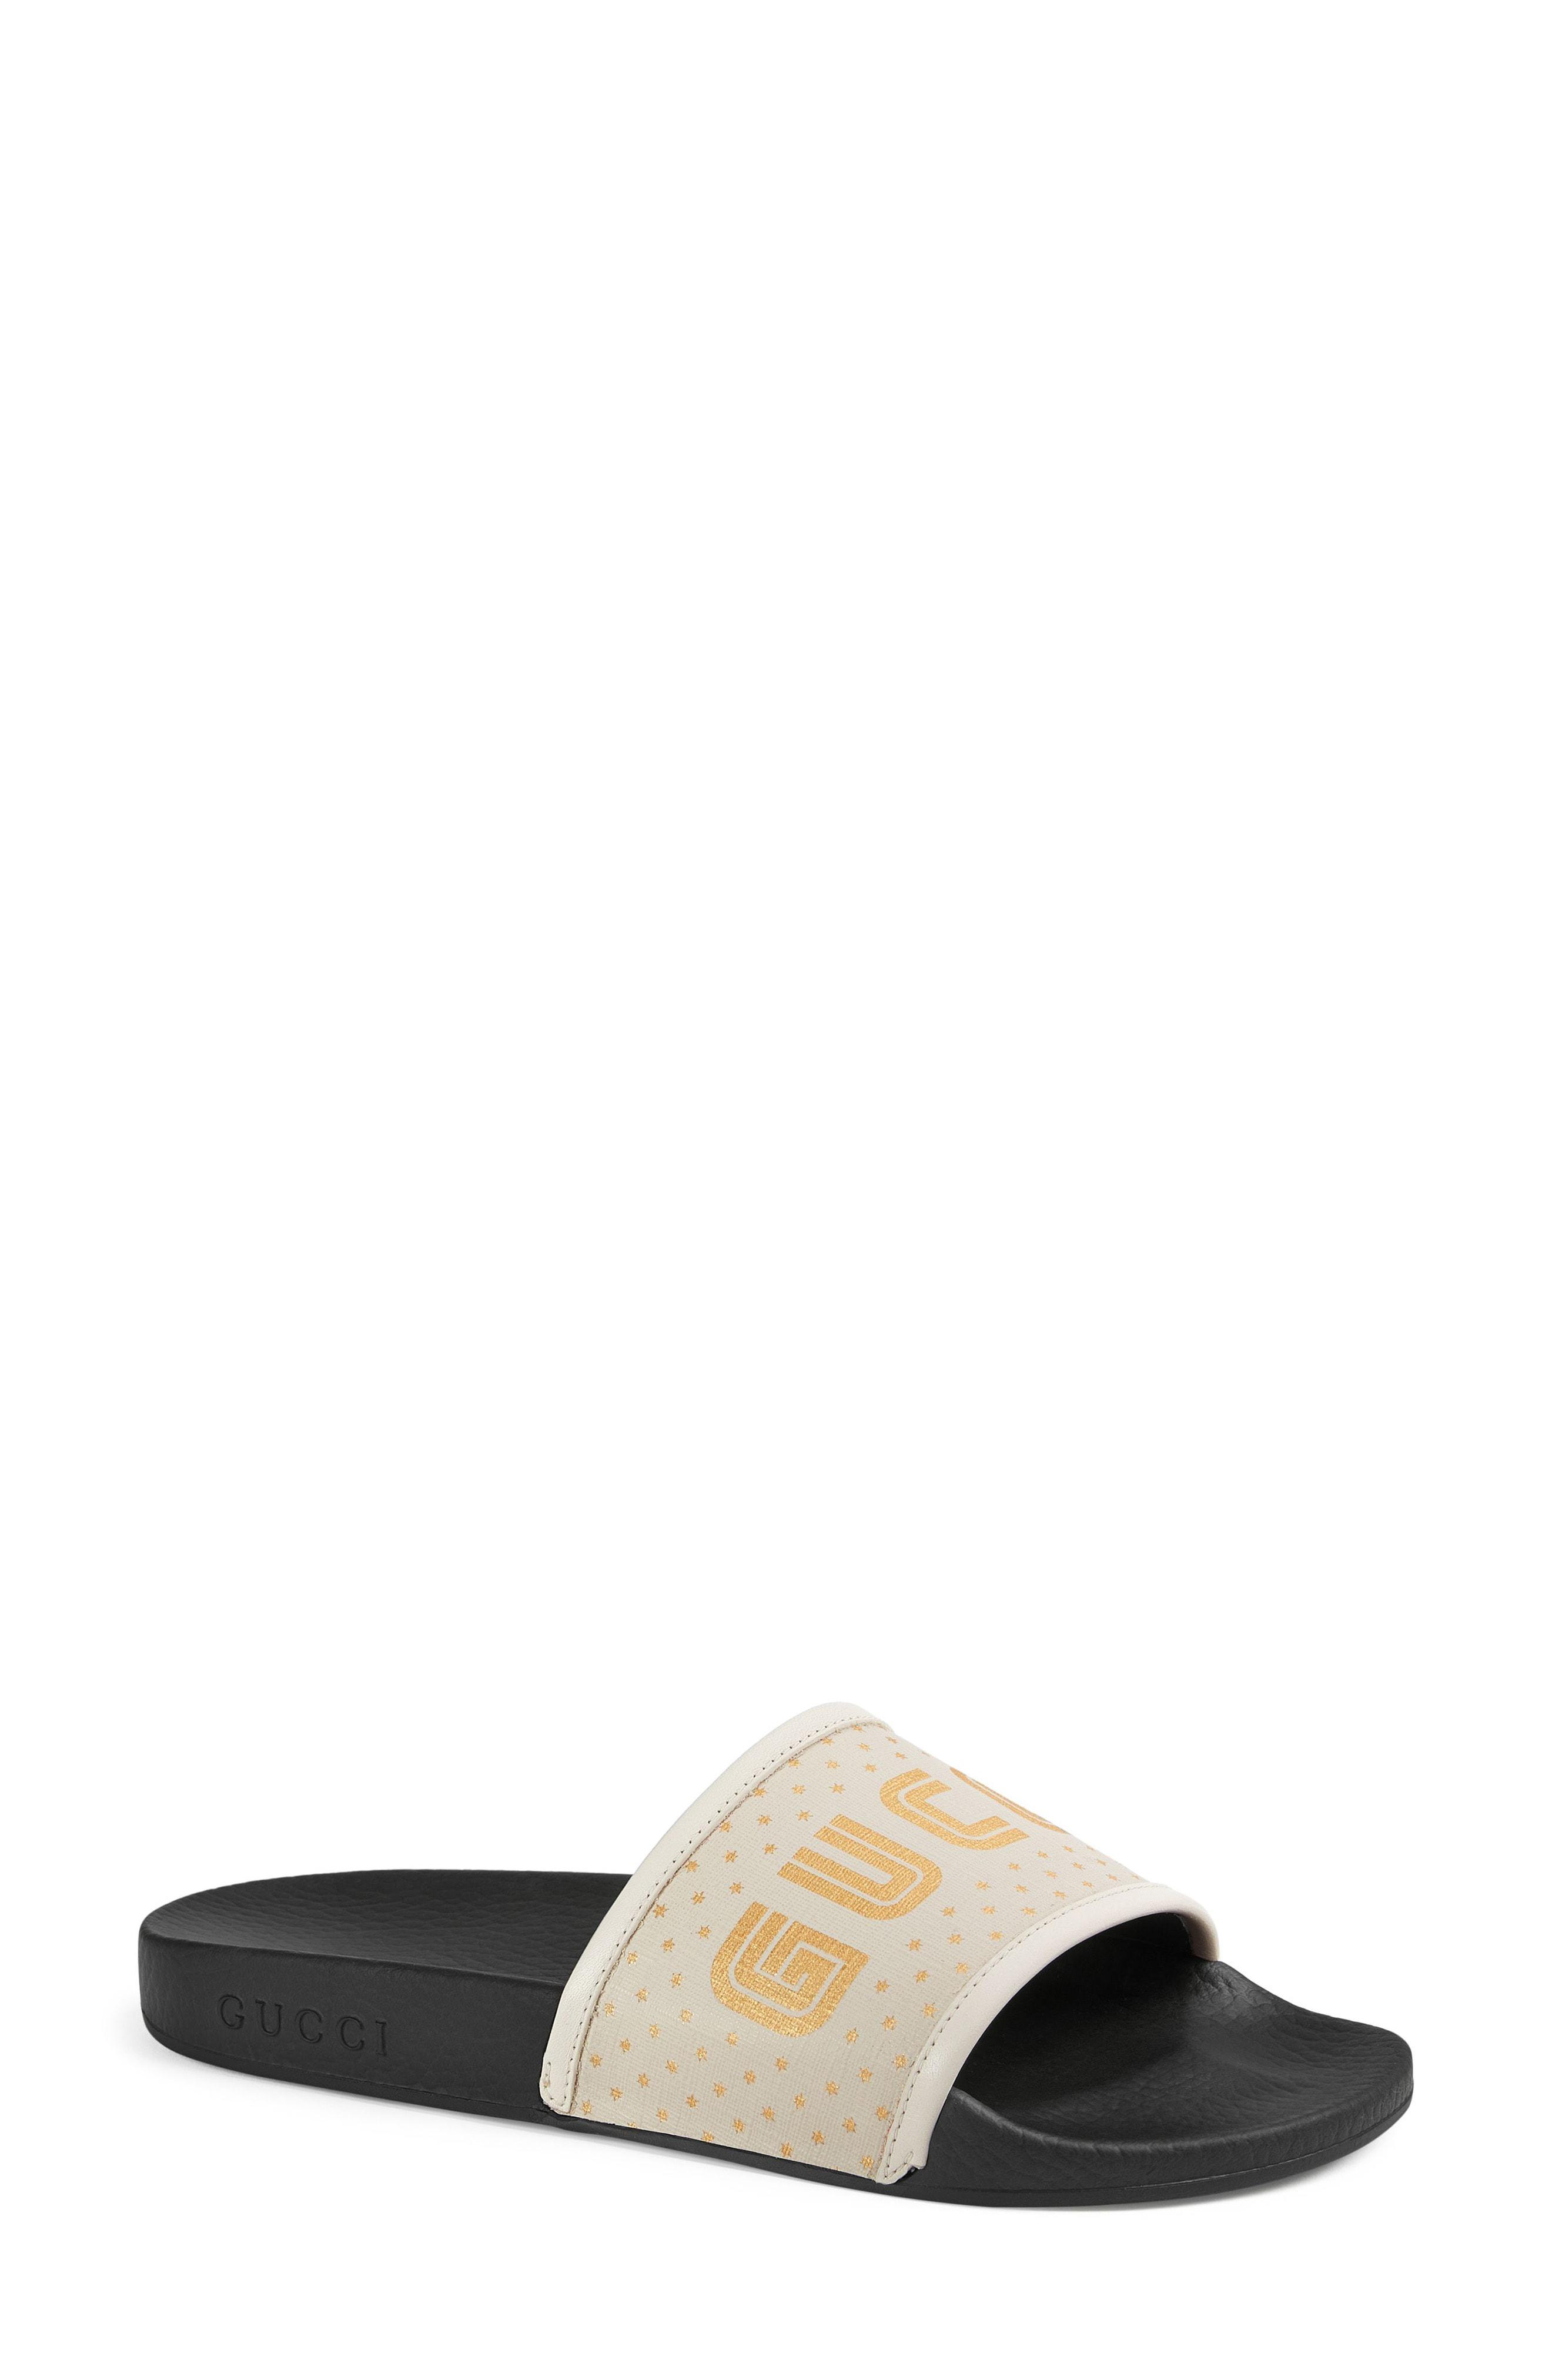 e23f57532 Gucci Pursuit Guccy Logo Slide Sandal in White - Save 23% - Lyst